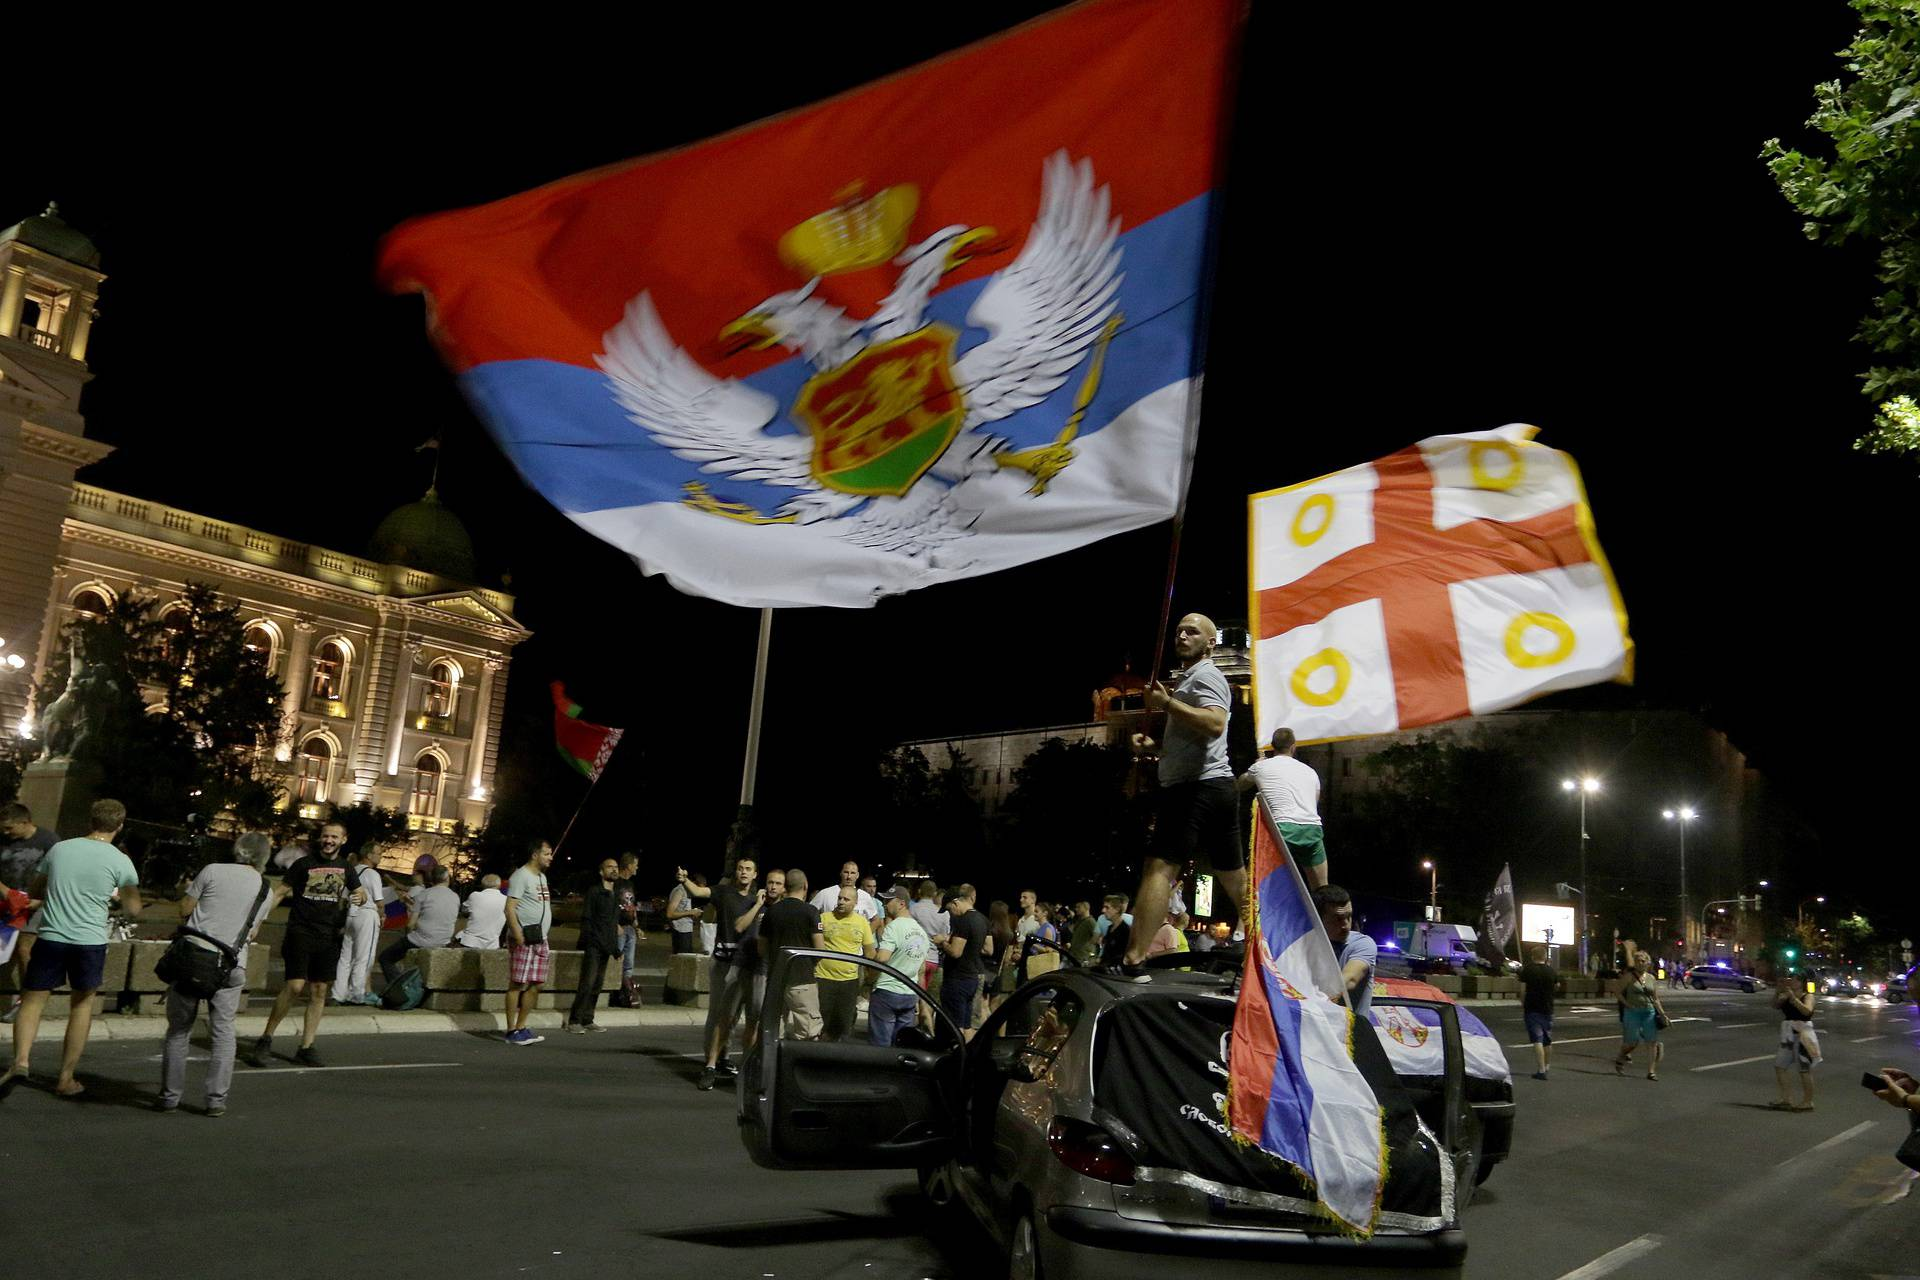 After the first results of the parliamentary elections, supporters of the Montenegrin opposition in Serbia gathered in front of the Serbian Parliament to celebrate the victory.Simpatizeri opozicije Crne Gore u Srbiji po dobijanju prvih rezultata parlame